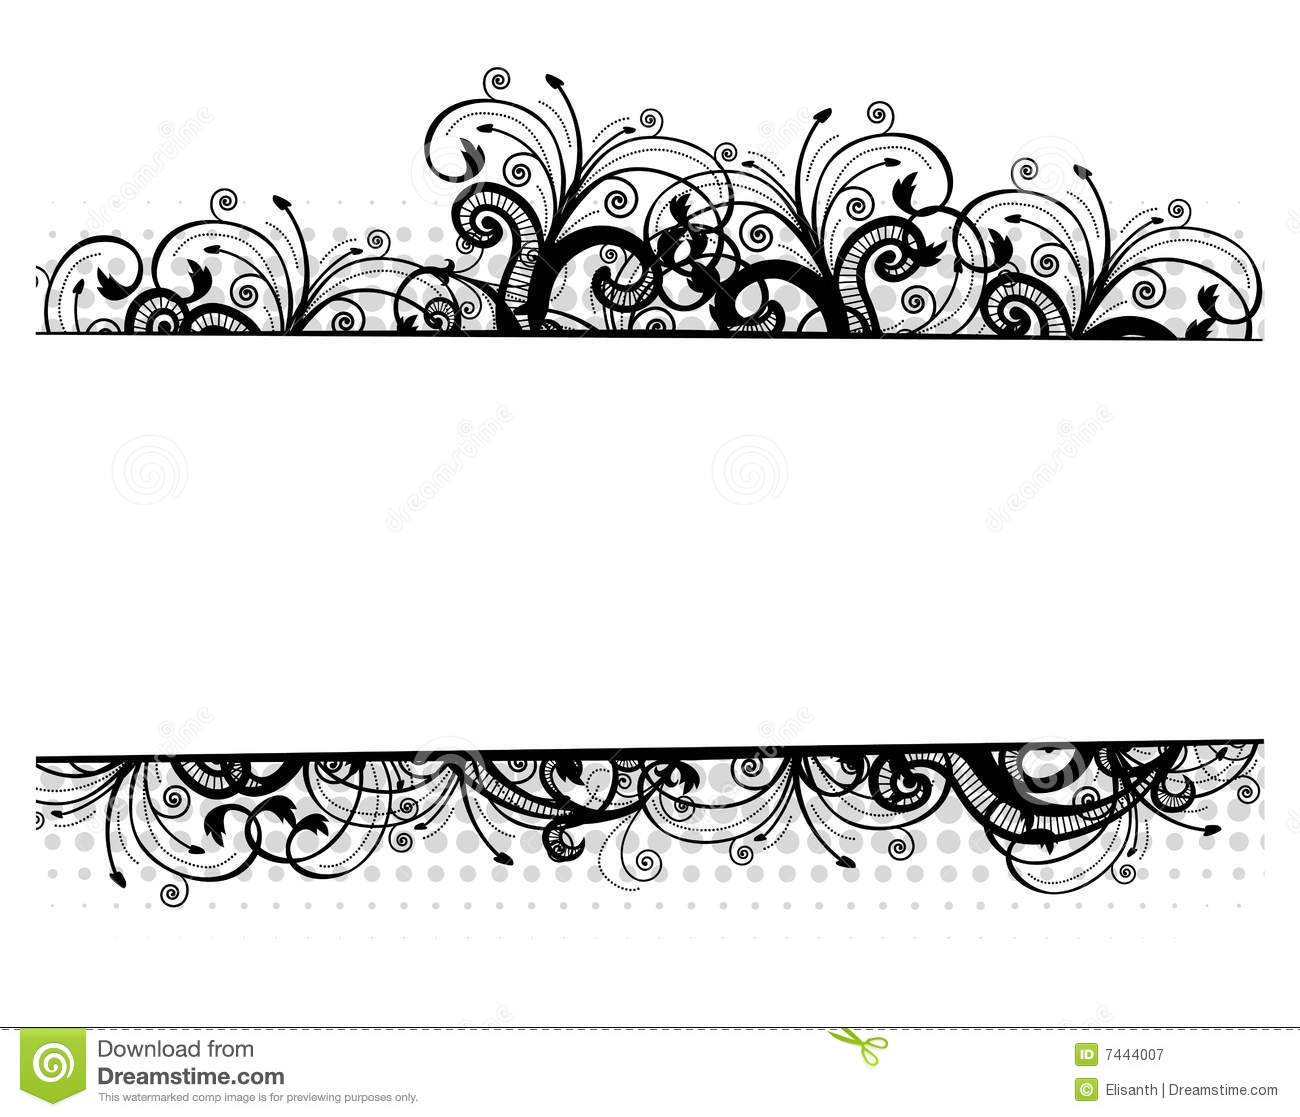 Royalty Free Stock Photography  Vector illustration of a floral borderVector Floral Border